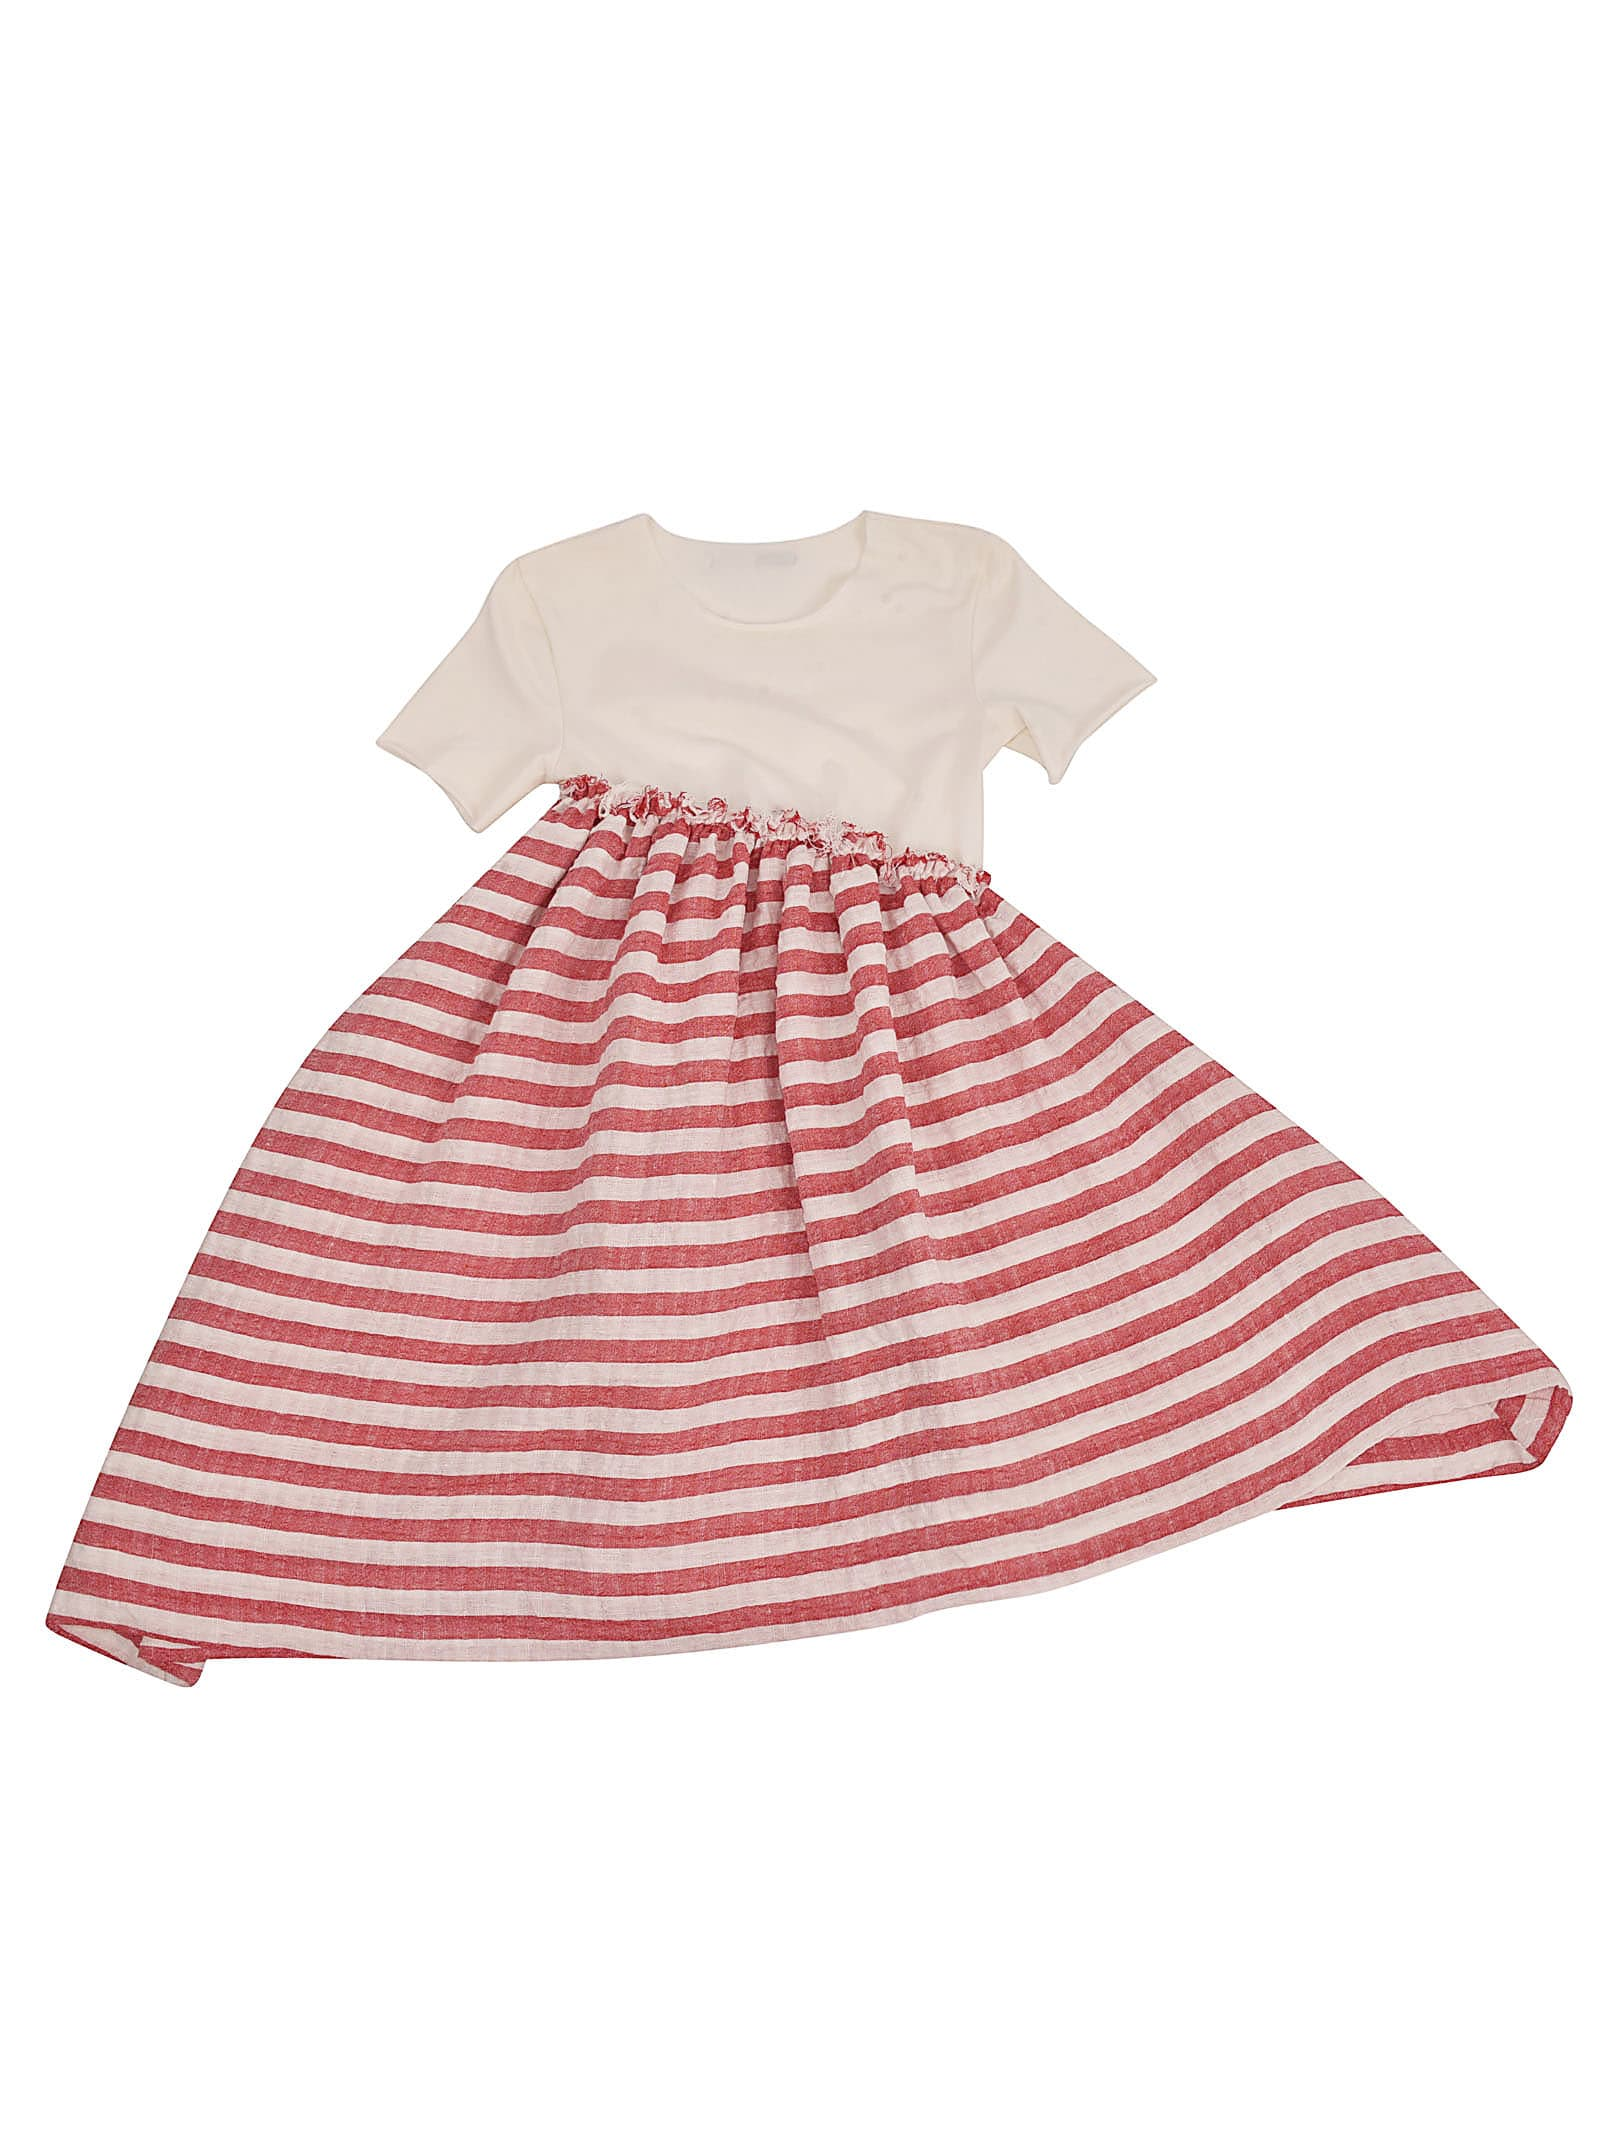 Buy Cucù Lab Dorotea Dress online, shop Cucù Lab with free shipping